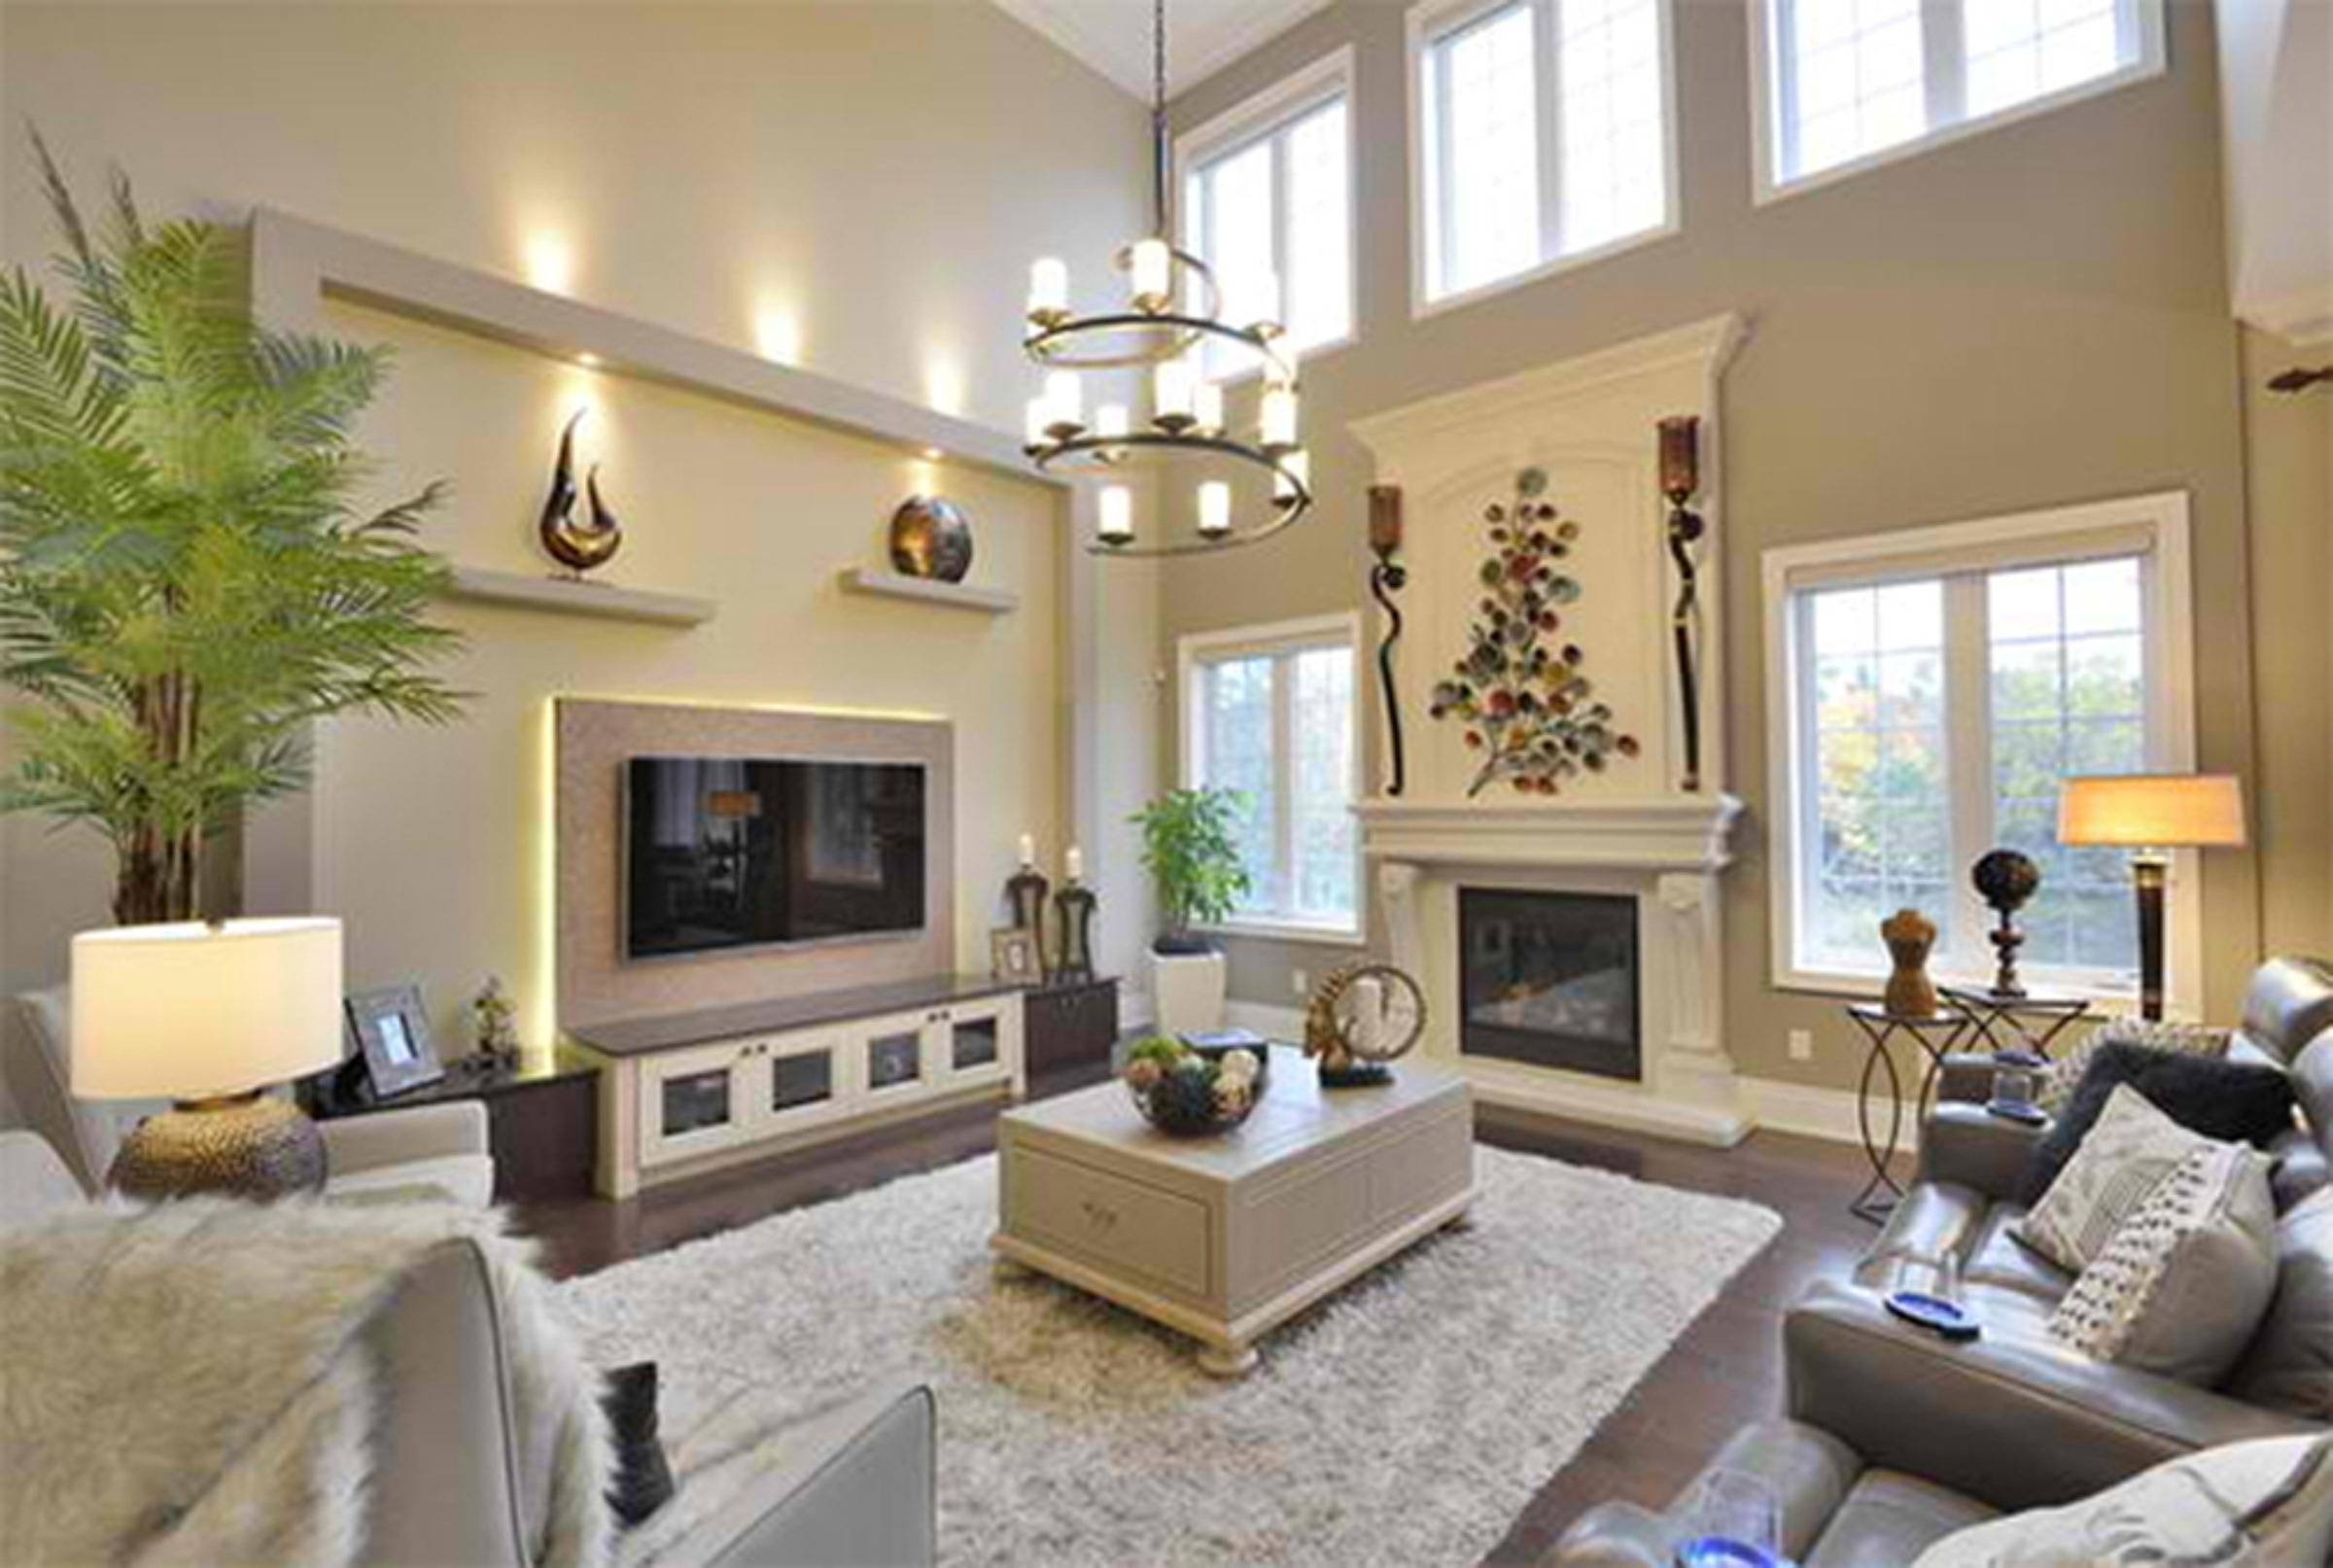 Ideas For Wall Decor For Large Walls Large Wall Decor Ideas For Within Most Up To Date Wall Art For Large Walls (View 14 of 20)